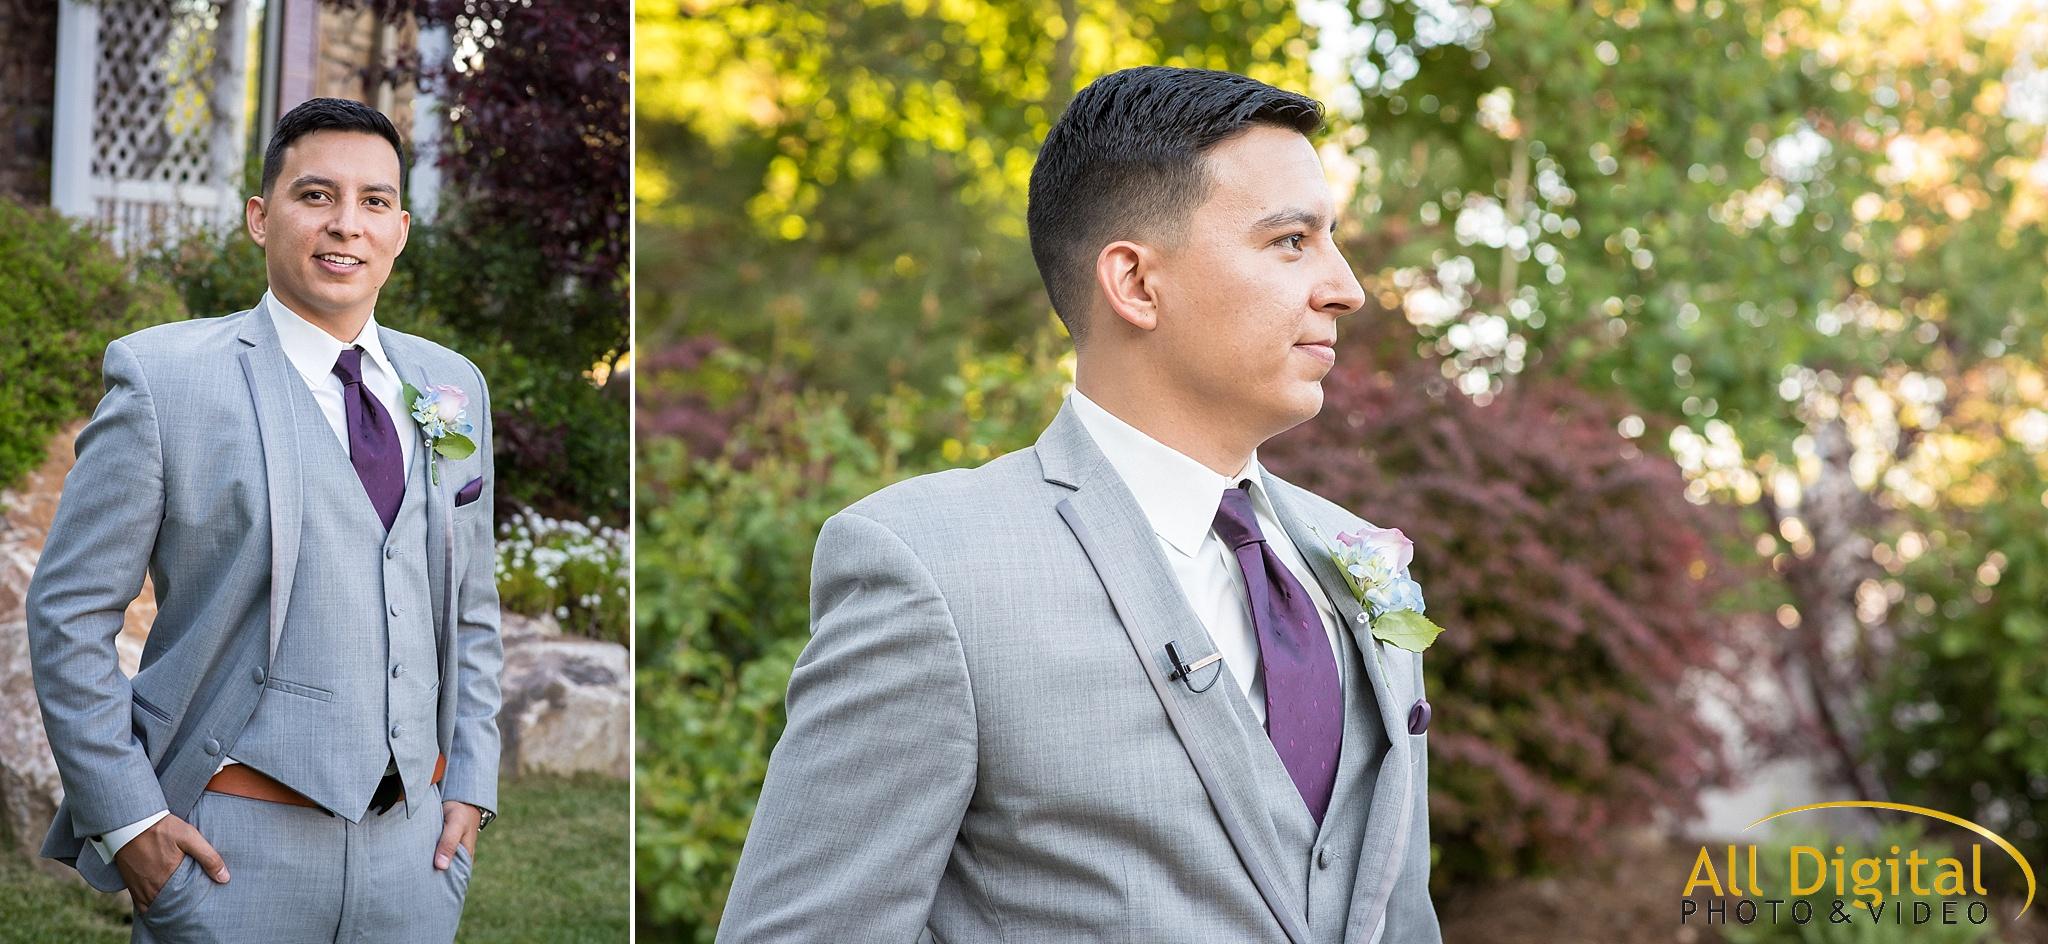 Groom portraits at Stonebrook Manor.